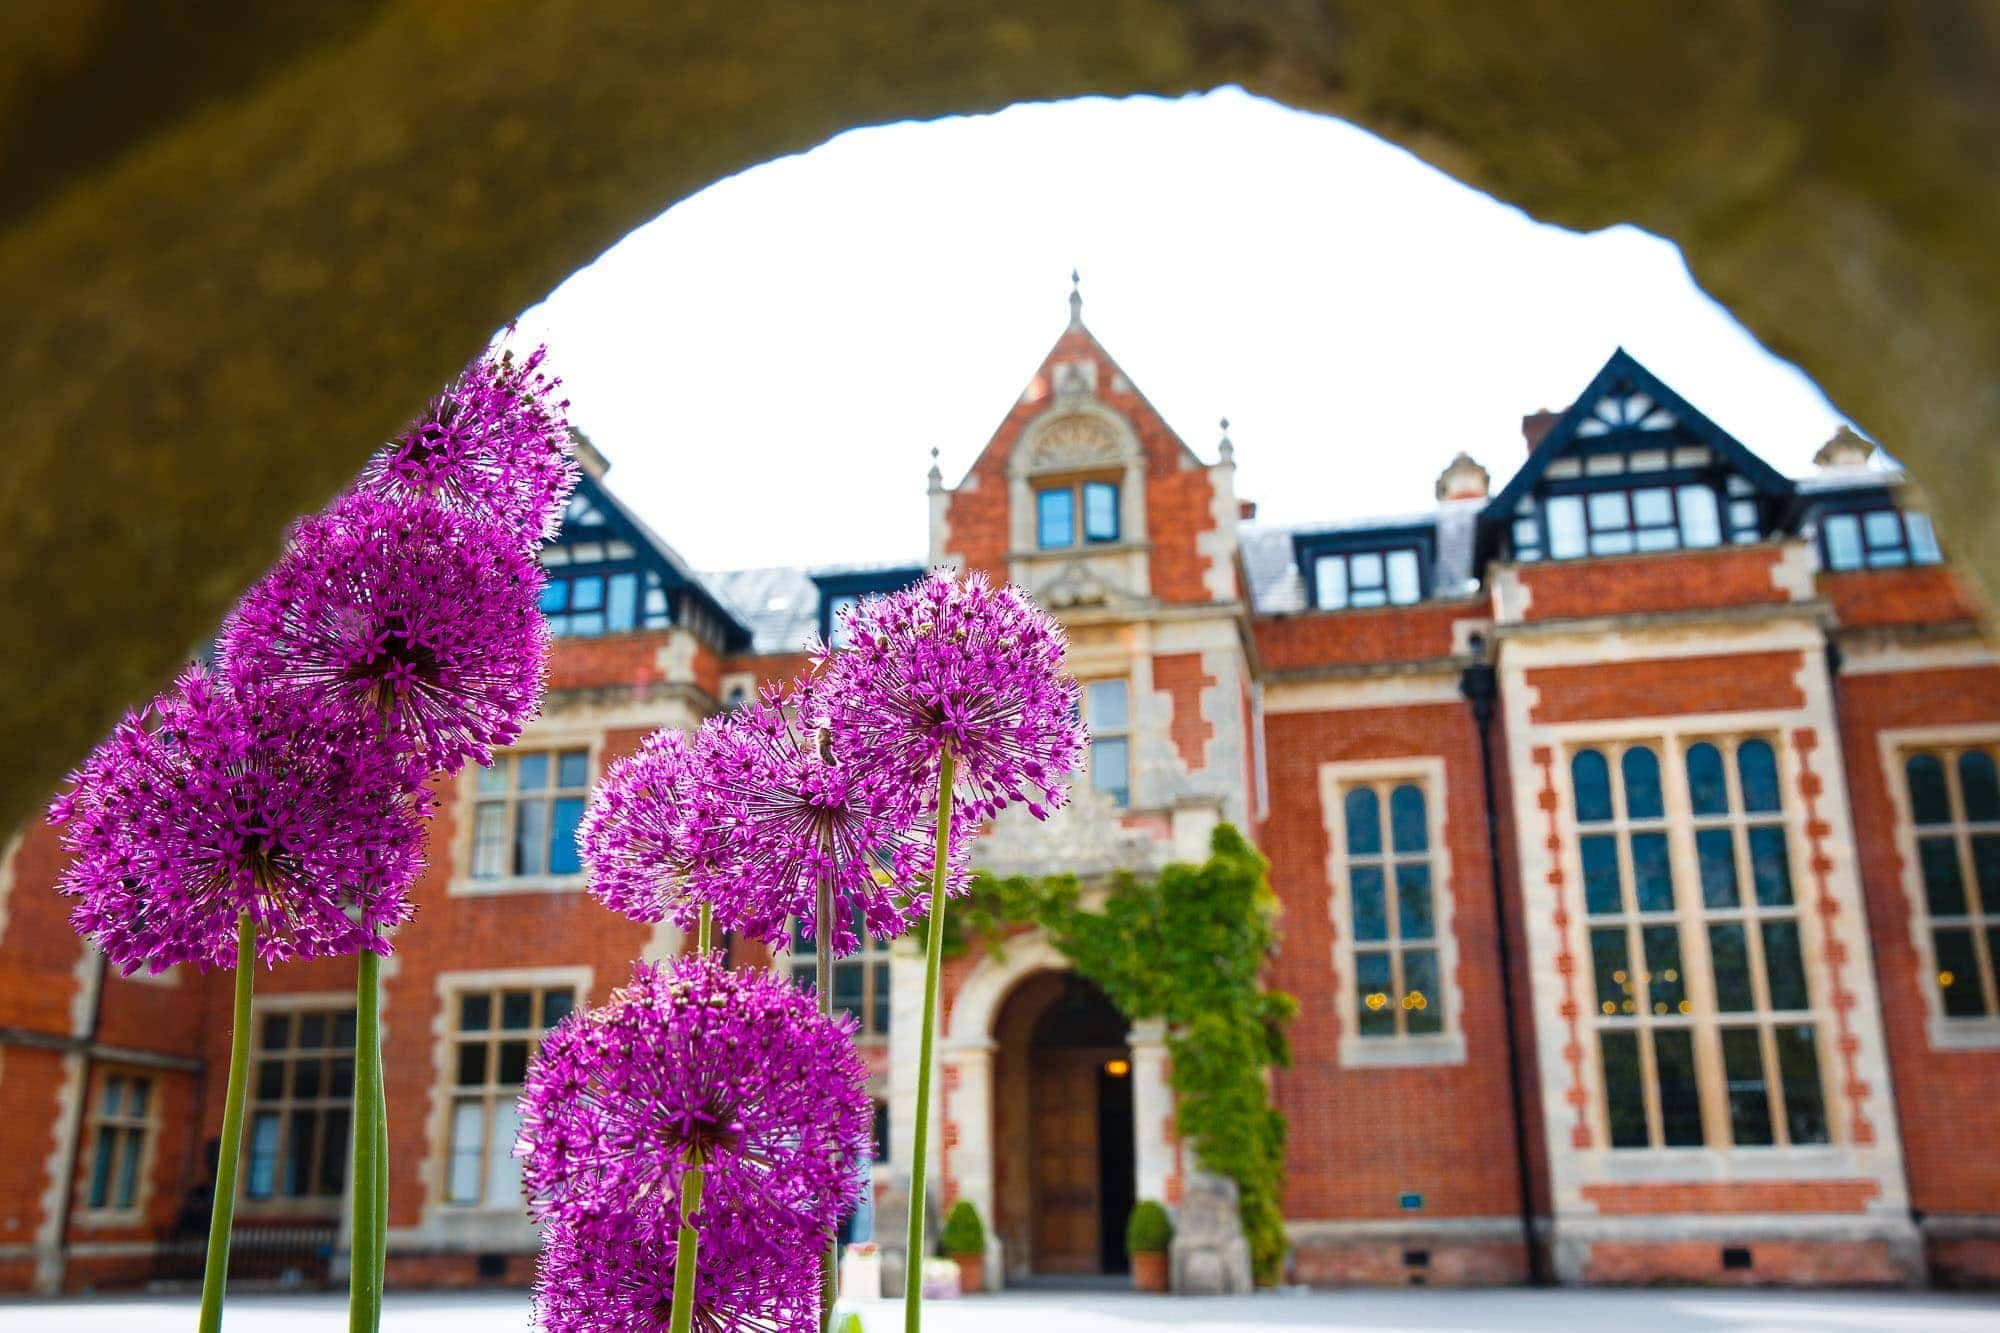 Front of Frensham Heights school with Purple Aliums